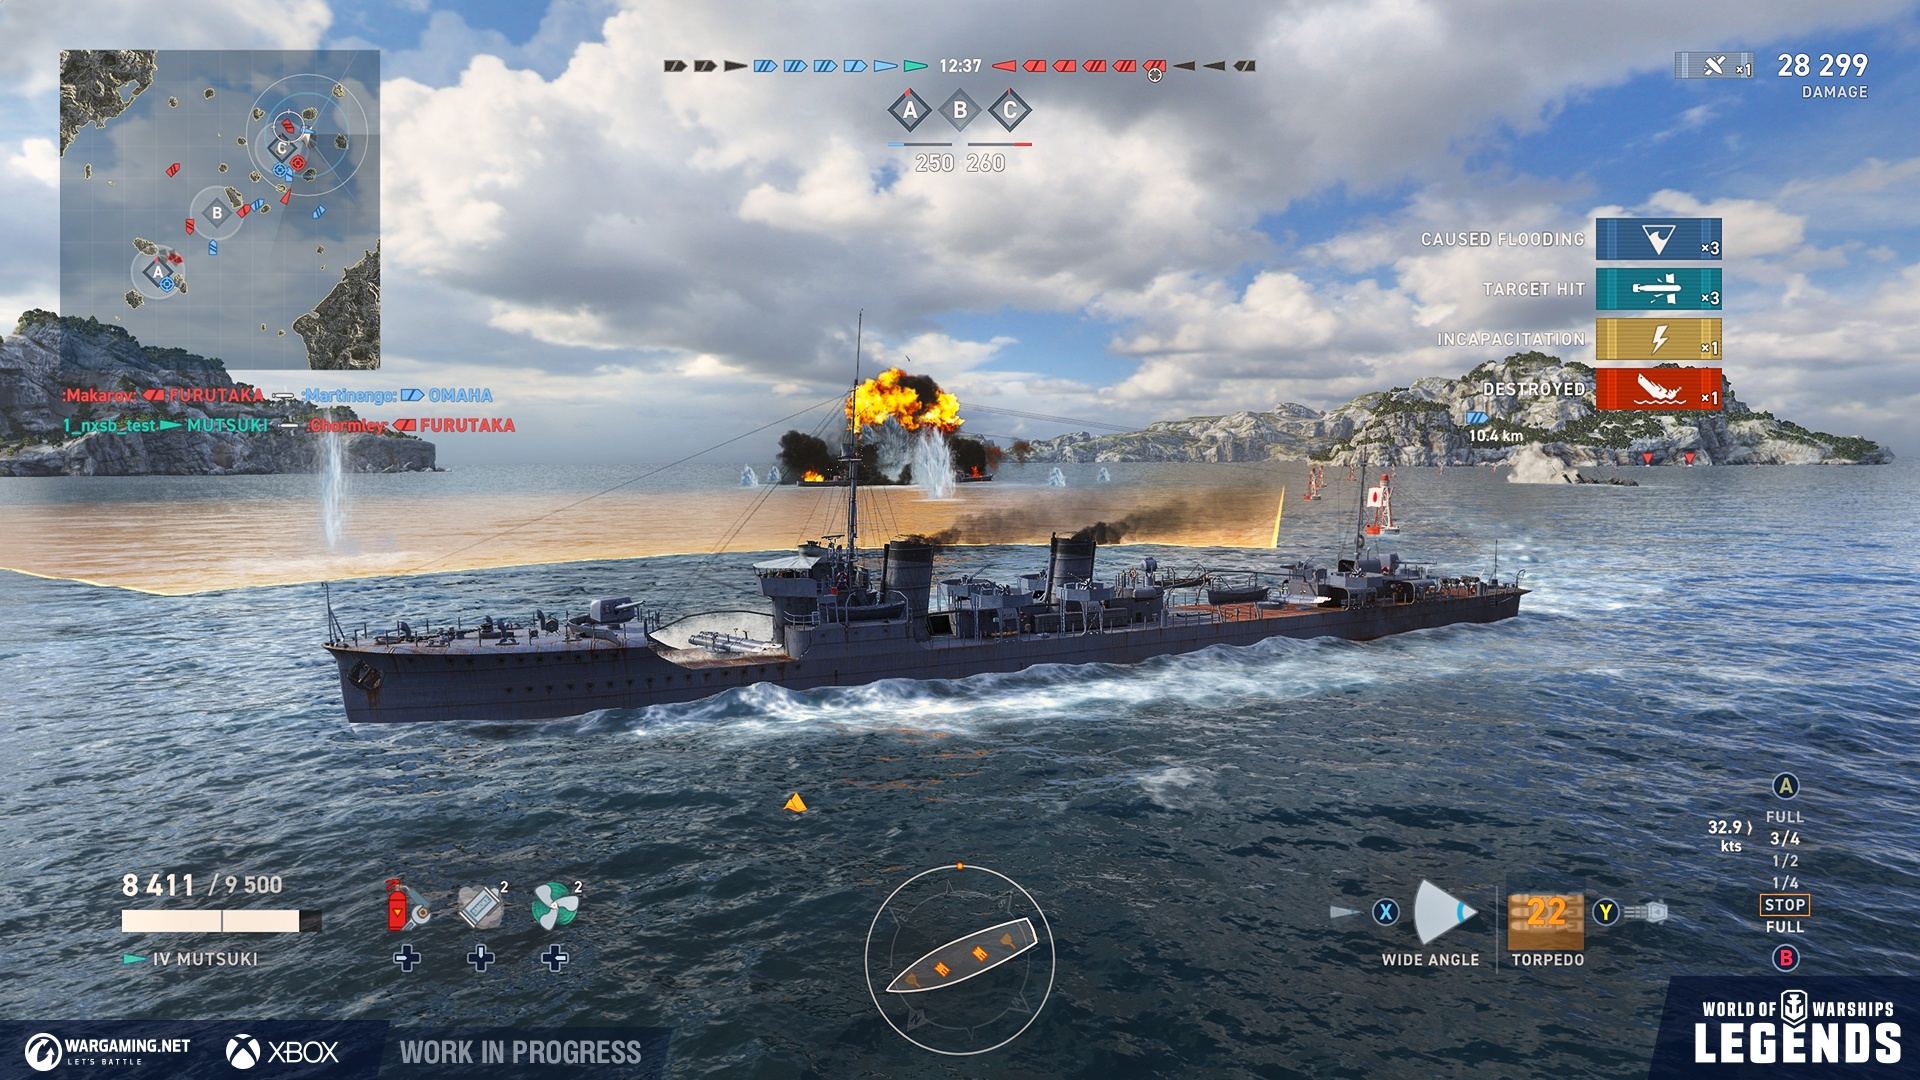 WG_WoWSL_Screenshots_Action_XBOX_UI_02_1920x1080